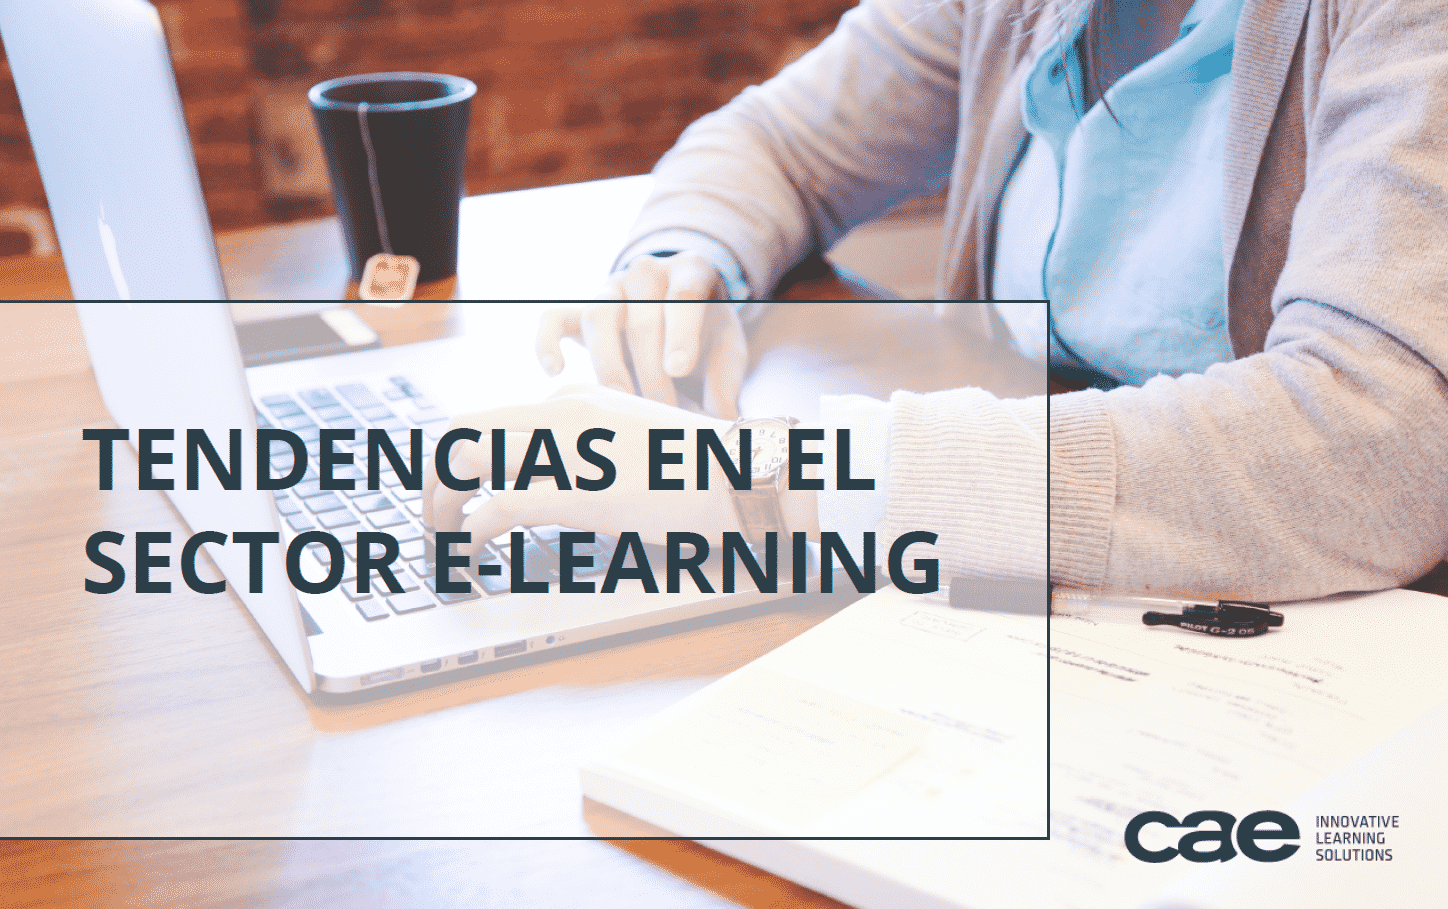 Ebook de tendencias en el sector e-Learning